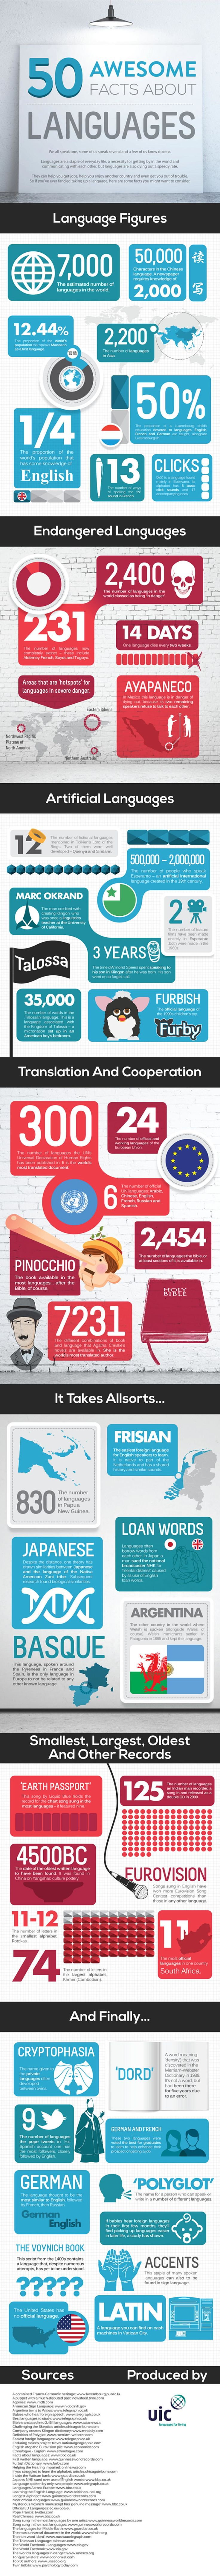 50 facts you probably didn't know about languages (infographic)